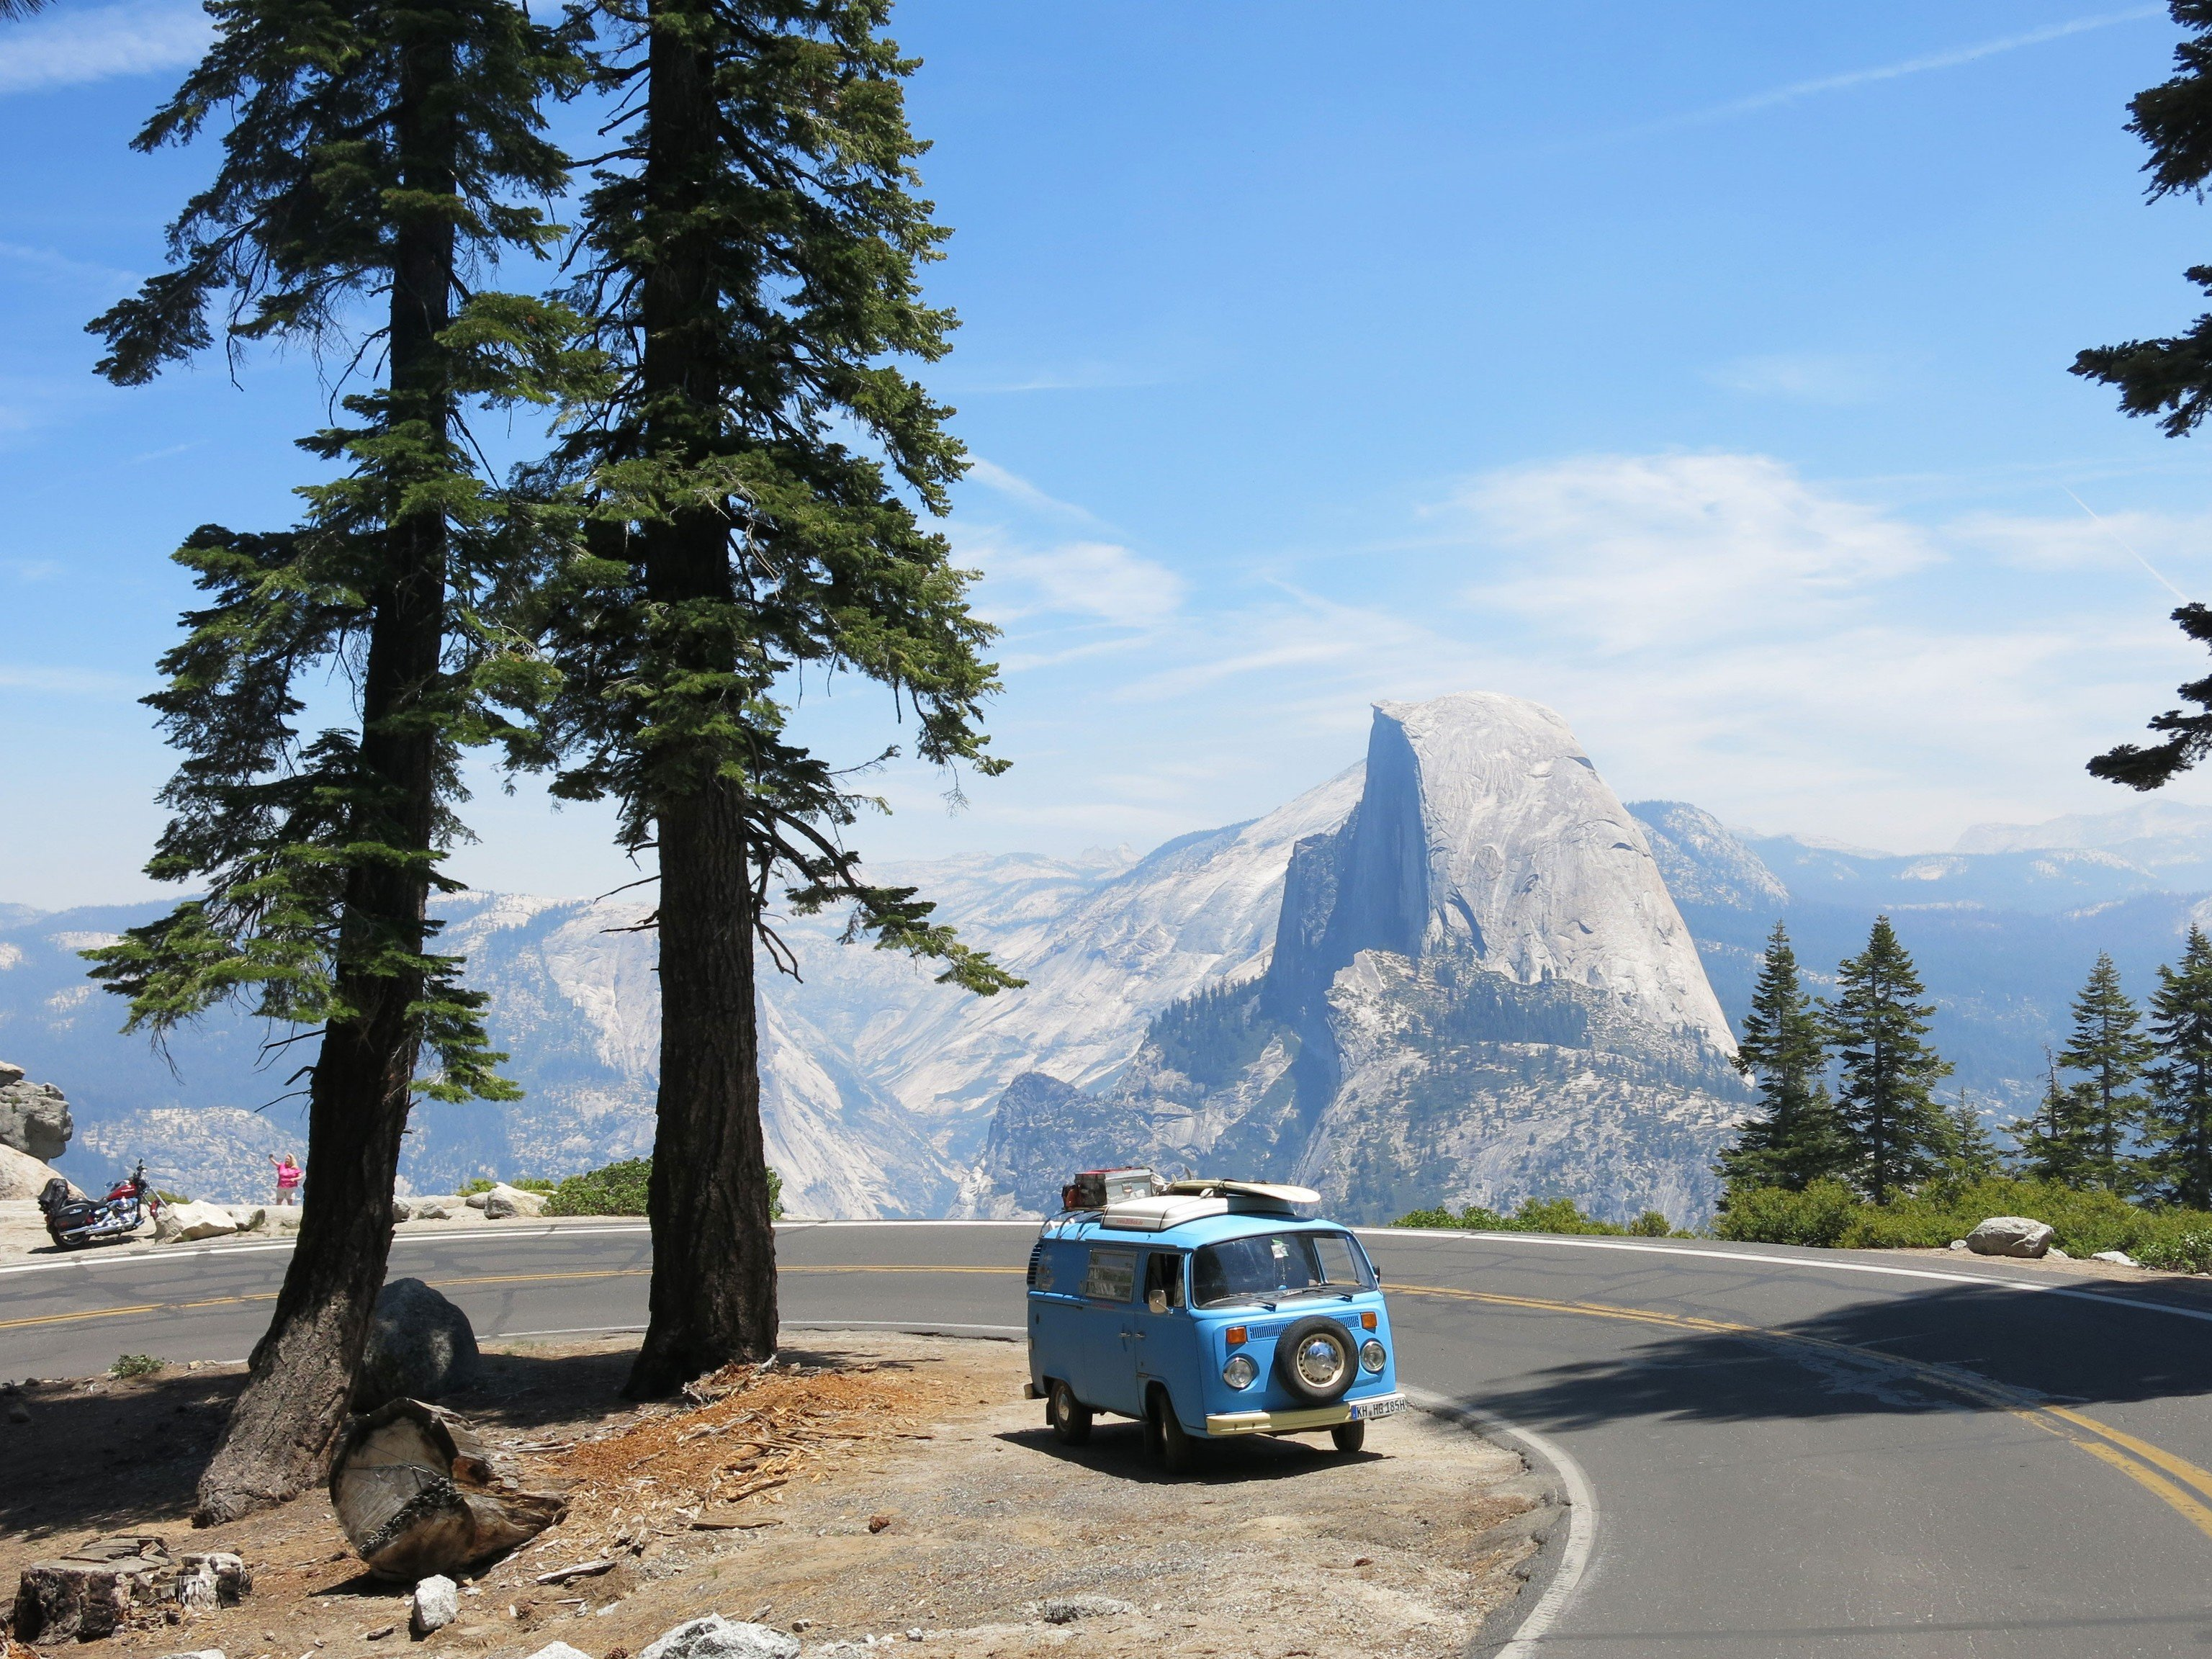 Hotels National Parks Outdoors + Adventure Trip Ideas tree outdoor sky mountainous landforms mountain wilderness mountain range road vacation road trip vehicle landscape mountain pass alps traveling